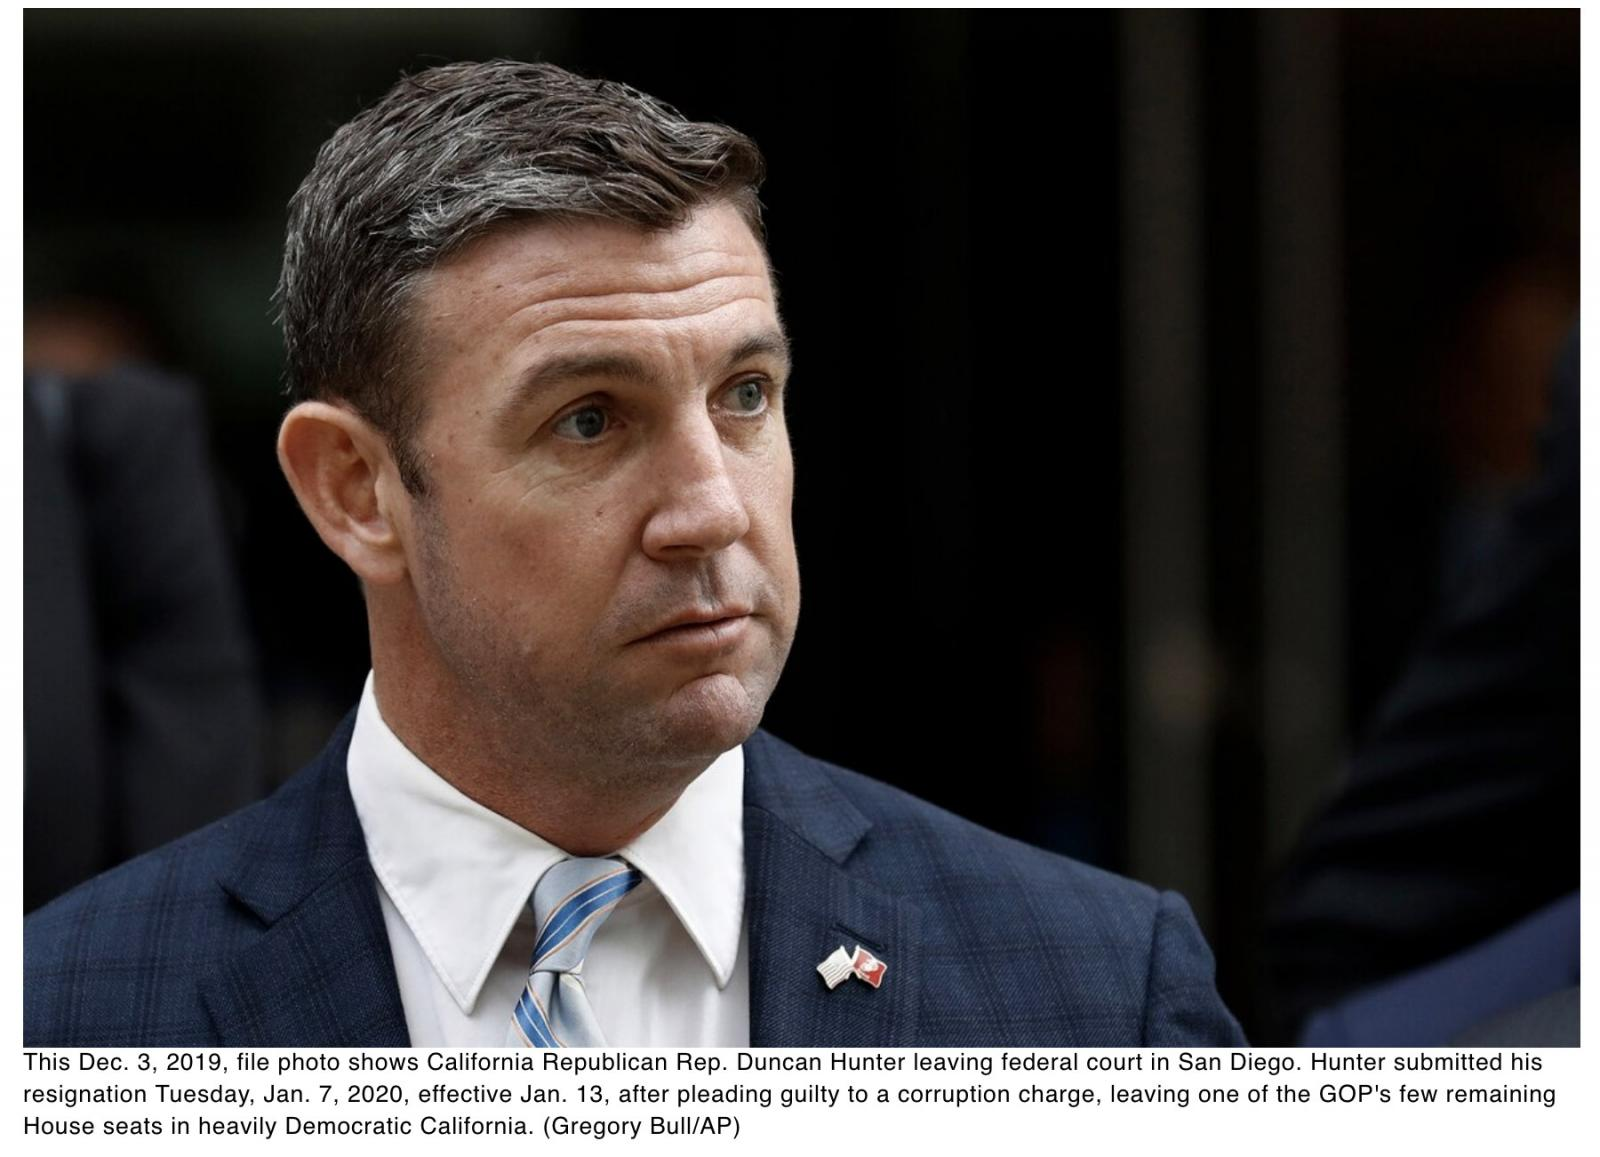 Marine vet Duncan Hunter resigns from Congress after corruption conviction